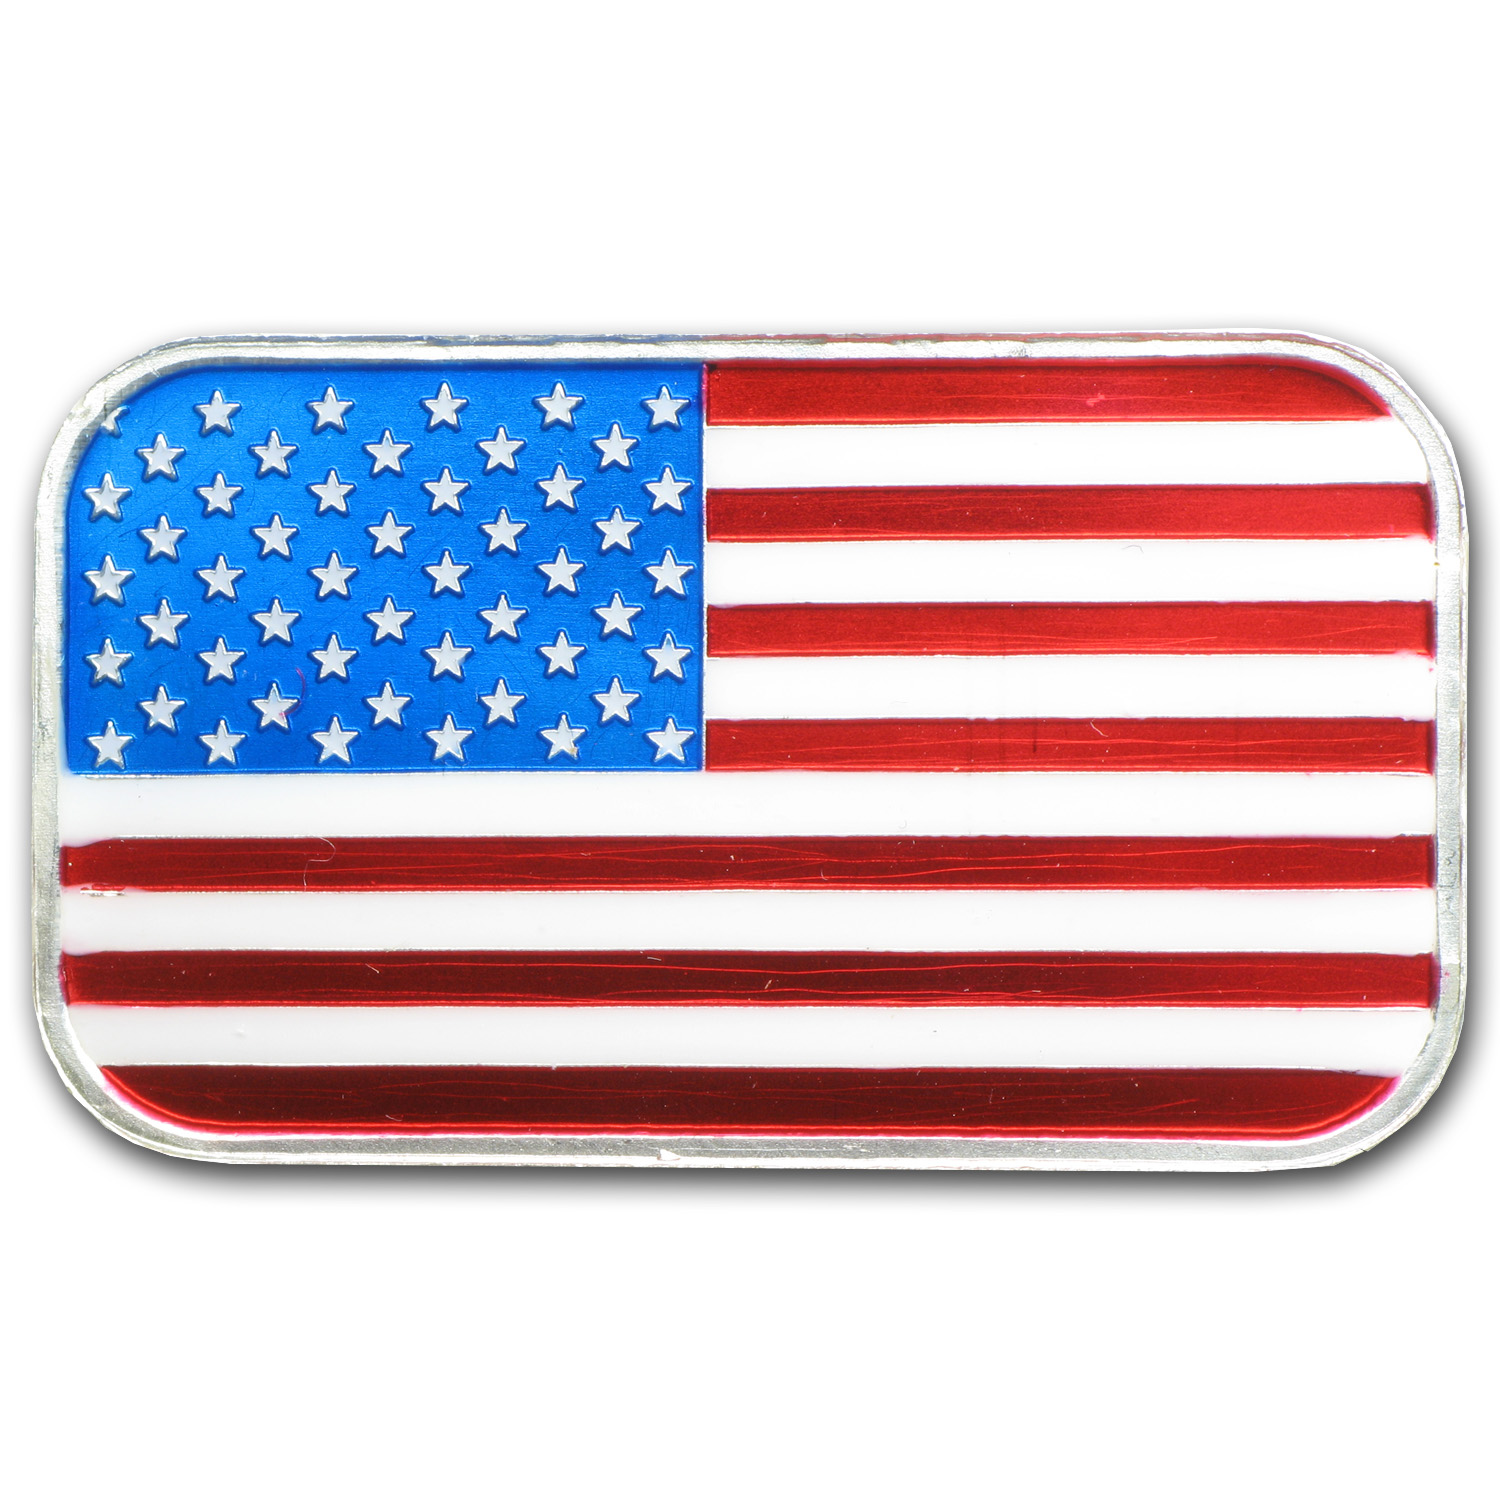 1 oz Silver Bar - American Flag (Enameled, w/Box & Capsule)